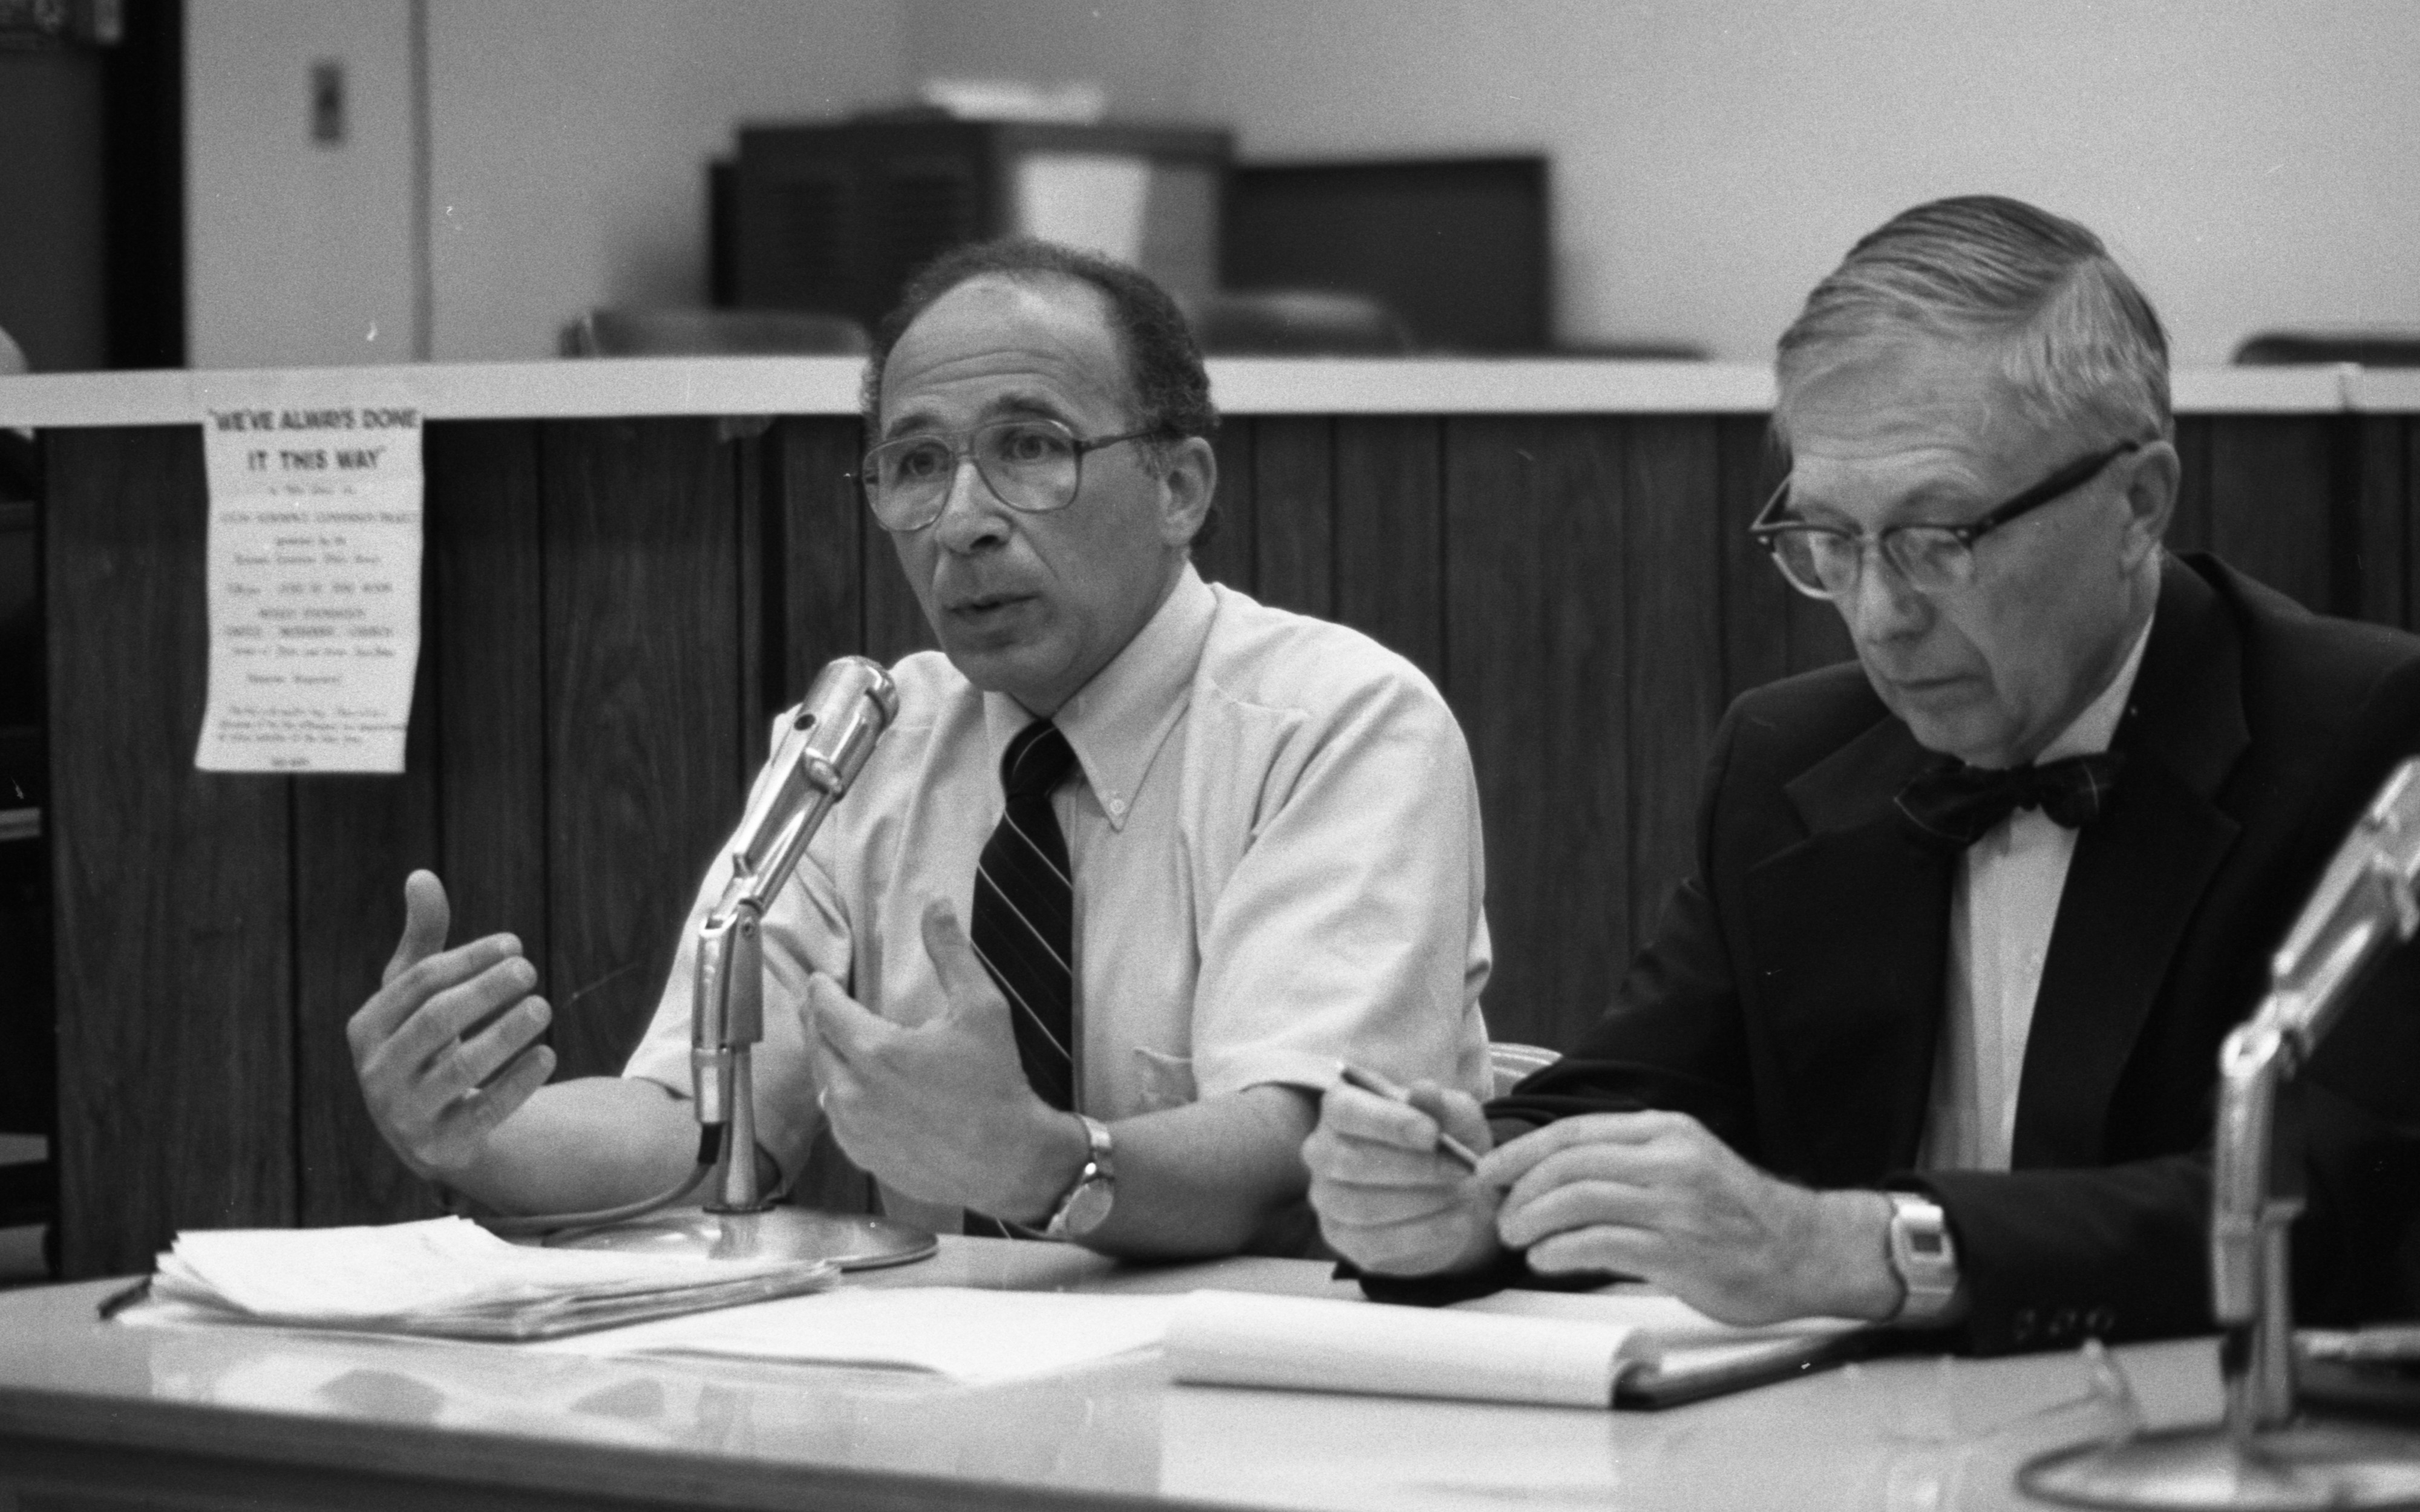 Dr. Arthur J. Vander Discusses Proposed Civil Defense Plan at Ann Arbor Public Library, June 1982 image